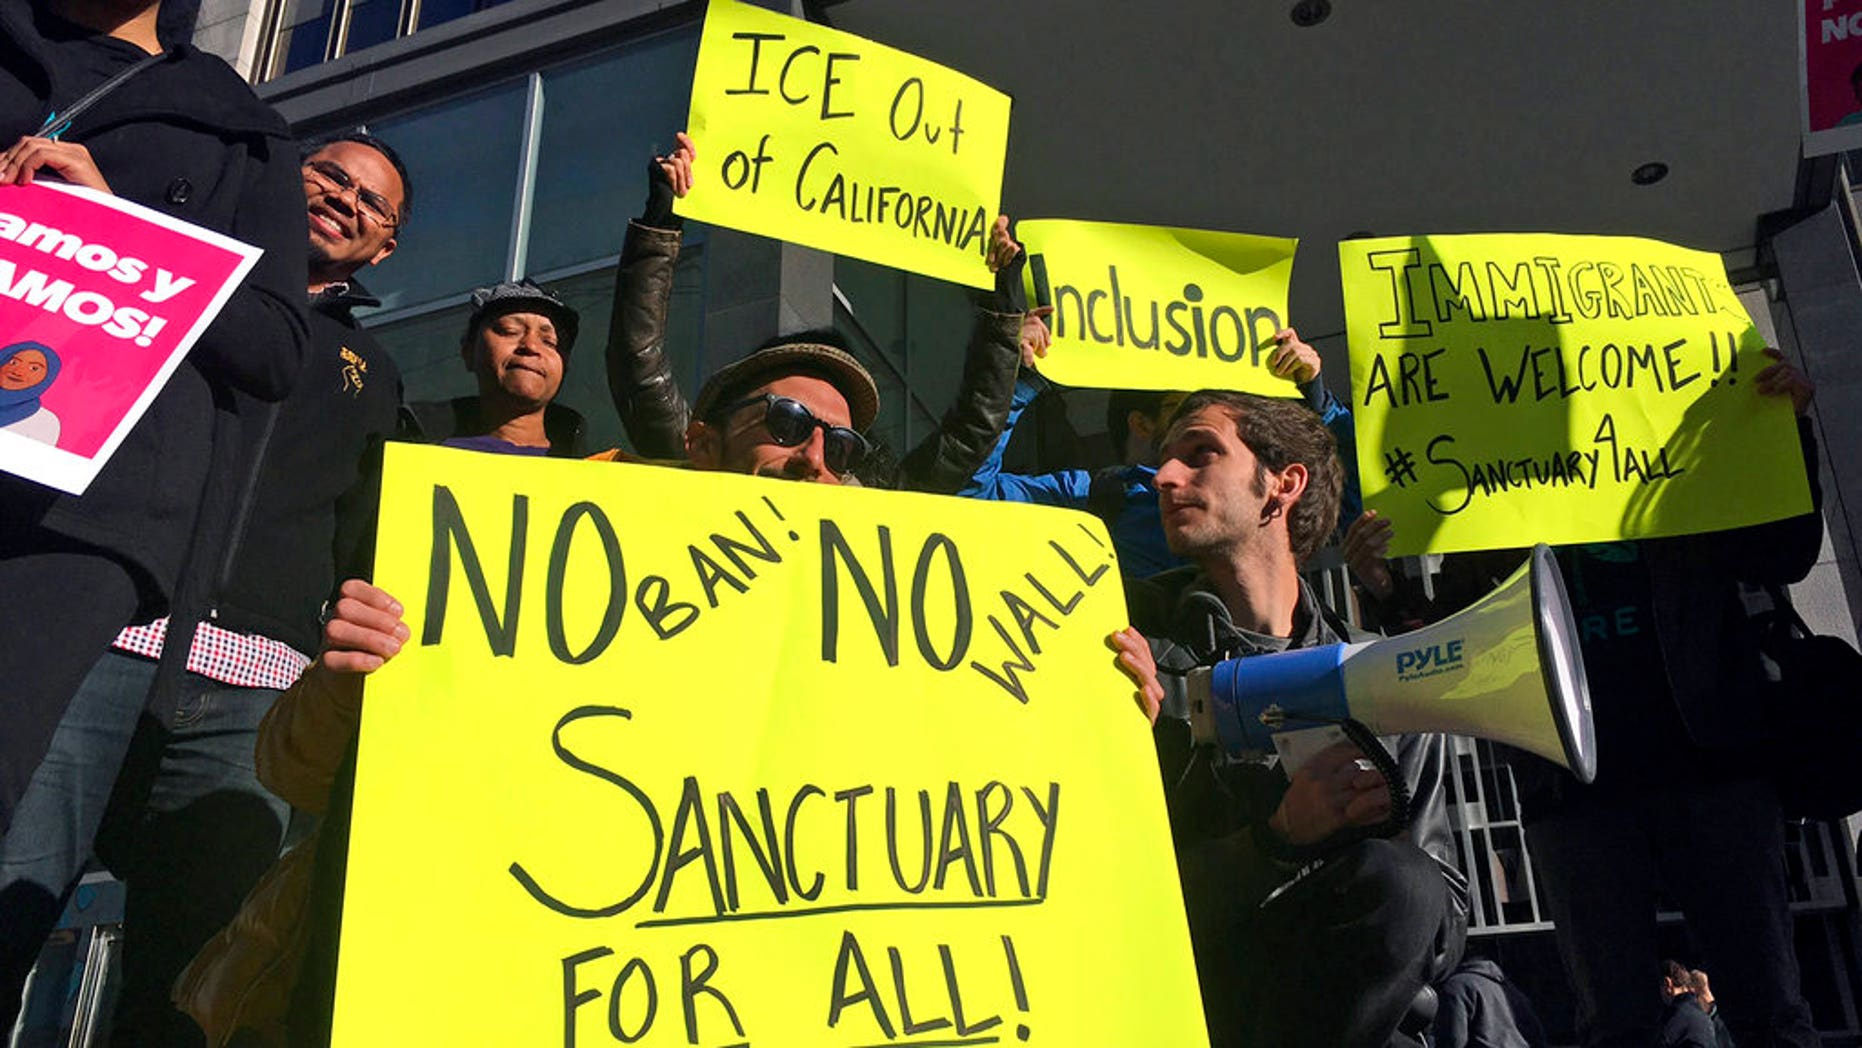 """""""President Trump might be able to tweet whatever comes to mind, but he can't grant himself new authority because he feels like it,"""" San Francisco City Attorney Dennis Herrera said in November, after the city filed a lawsuit against the Trump administration over the president's executive order defunding sanctuary cities."""